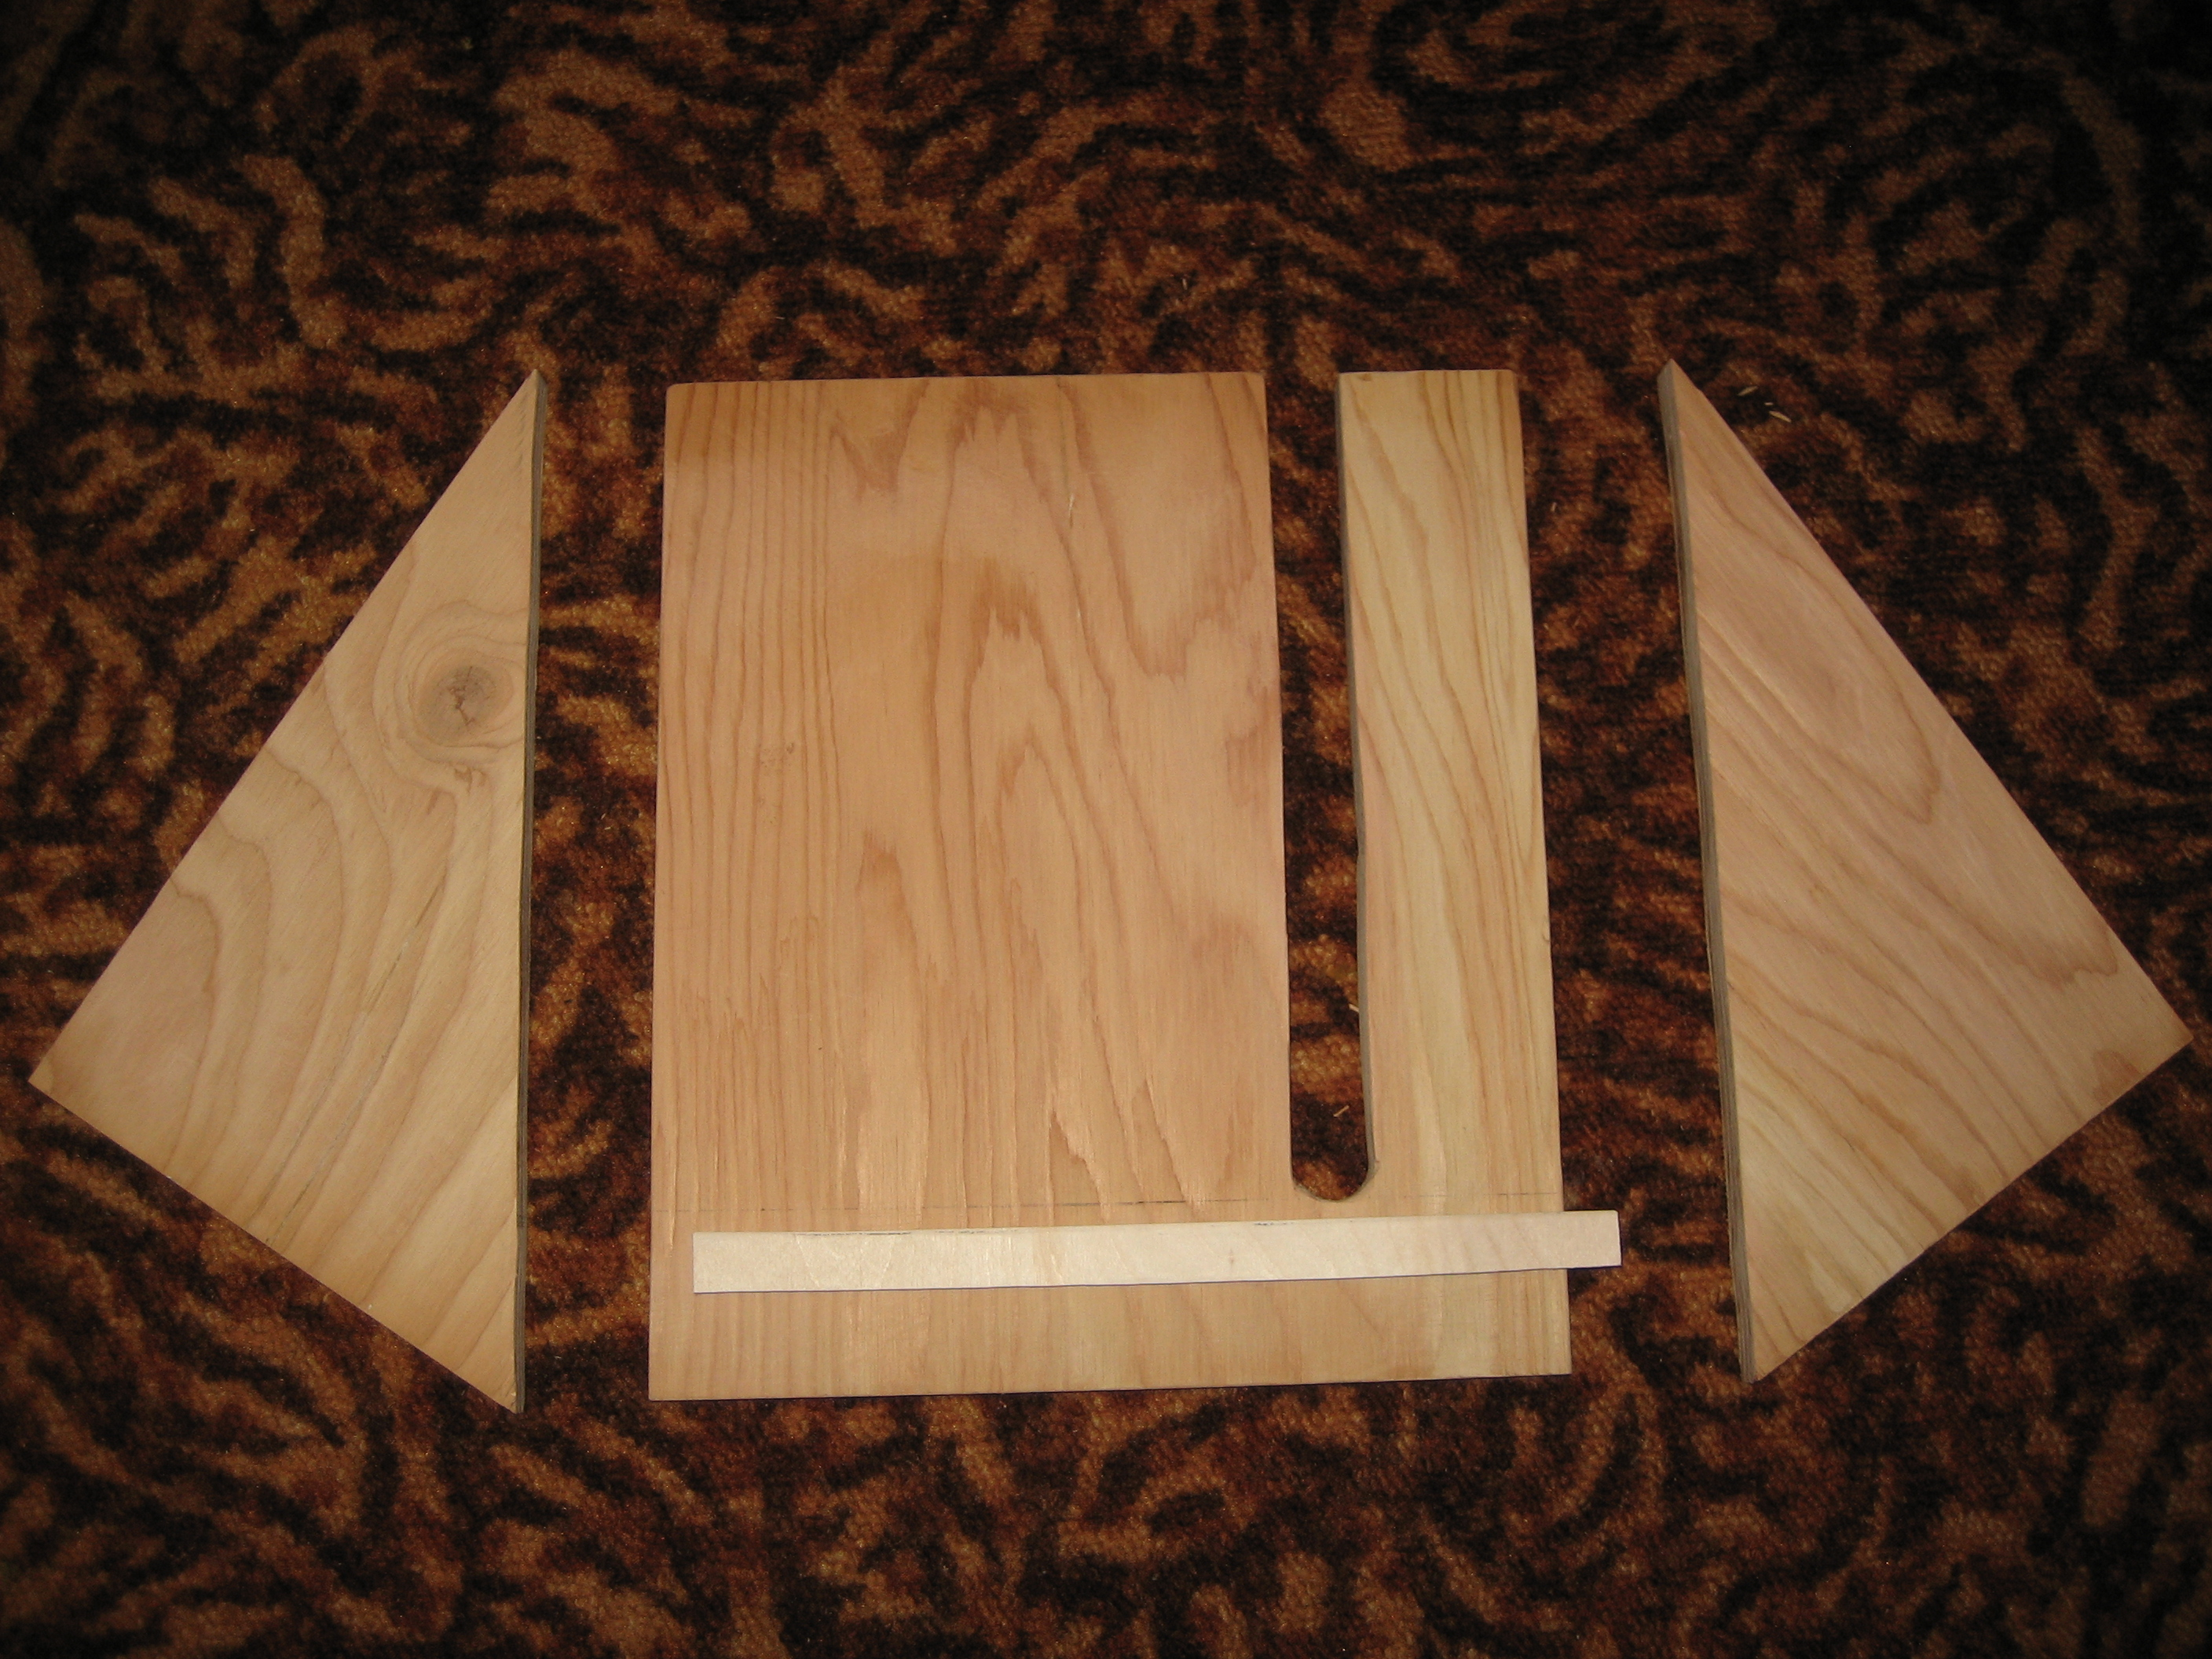 All plywood parts.